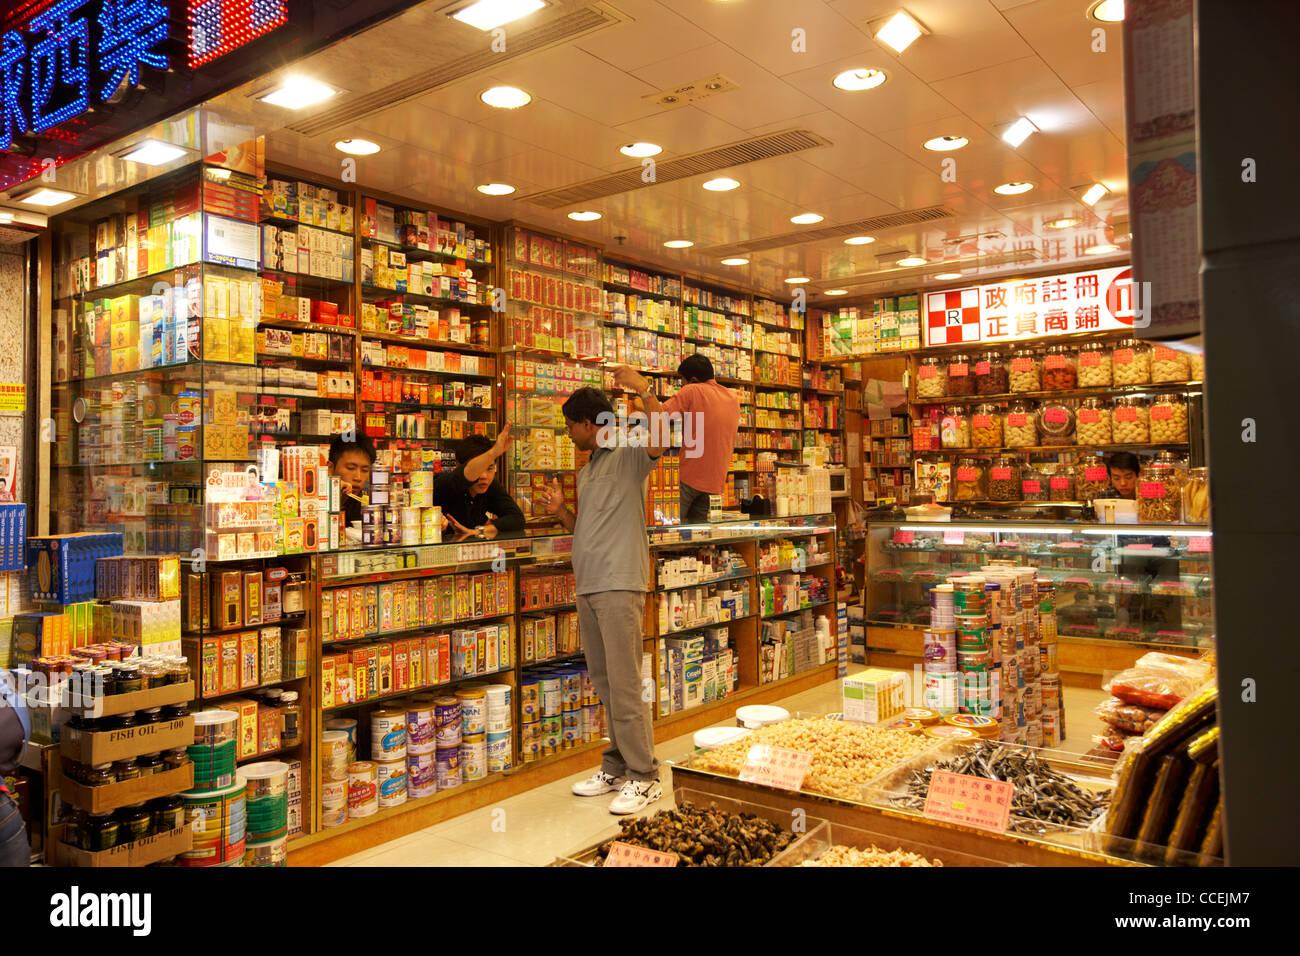 Chinese Health Food Shop Chemist Dispensary Hong Kong Hksar China regarding health food shop intended for your reference